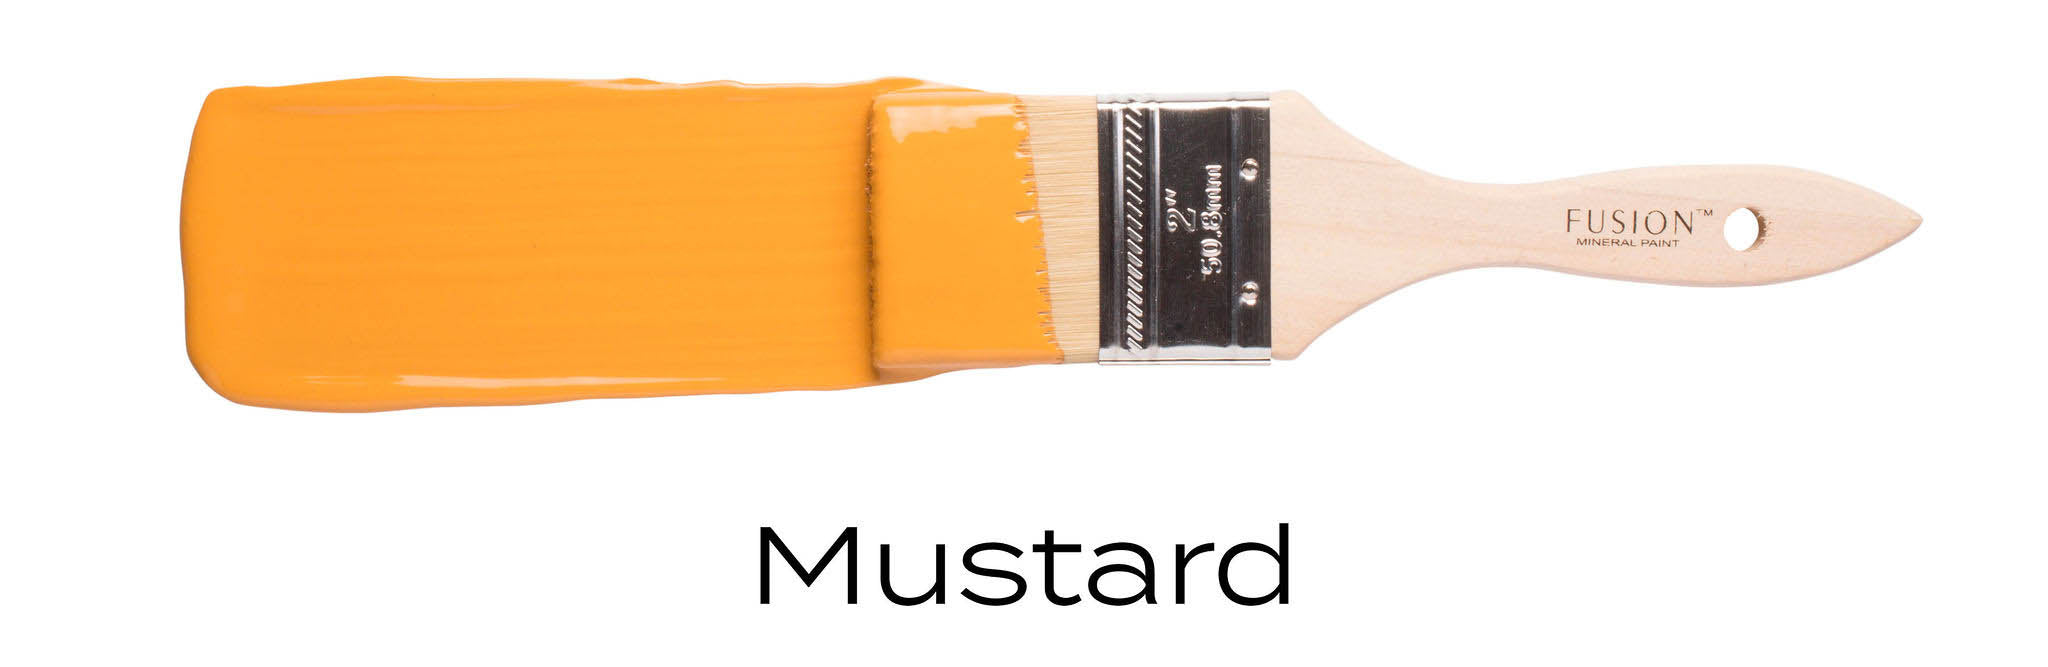 Mustard, Fusion Mineral Paint furniture paint colour example on paint brush stroke